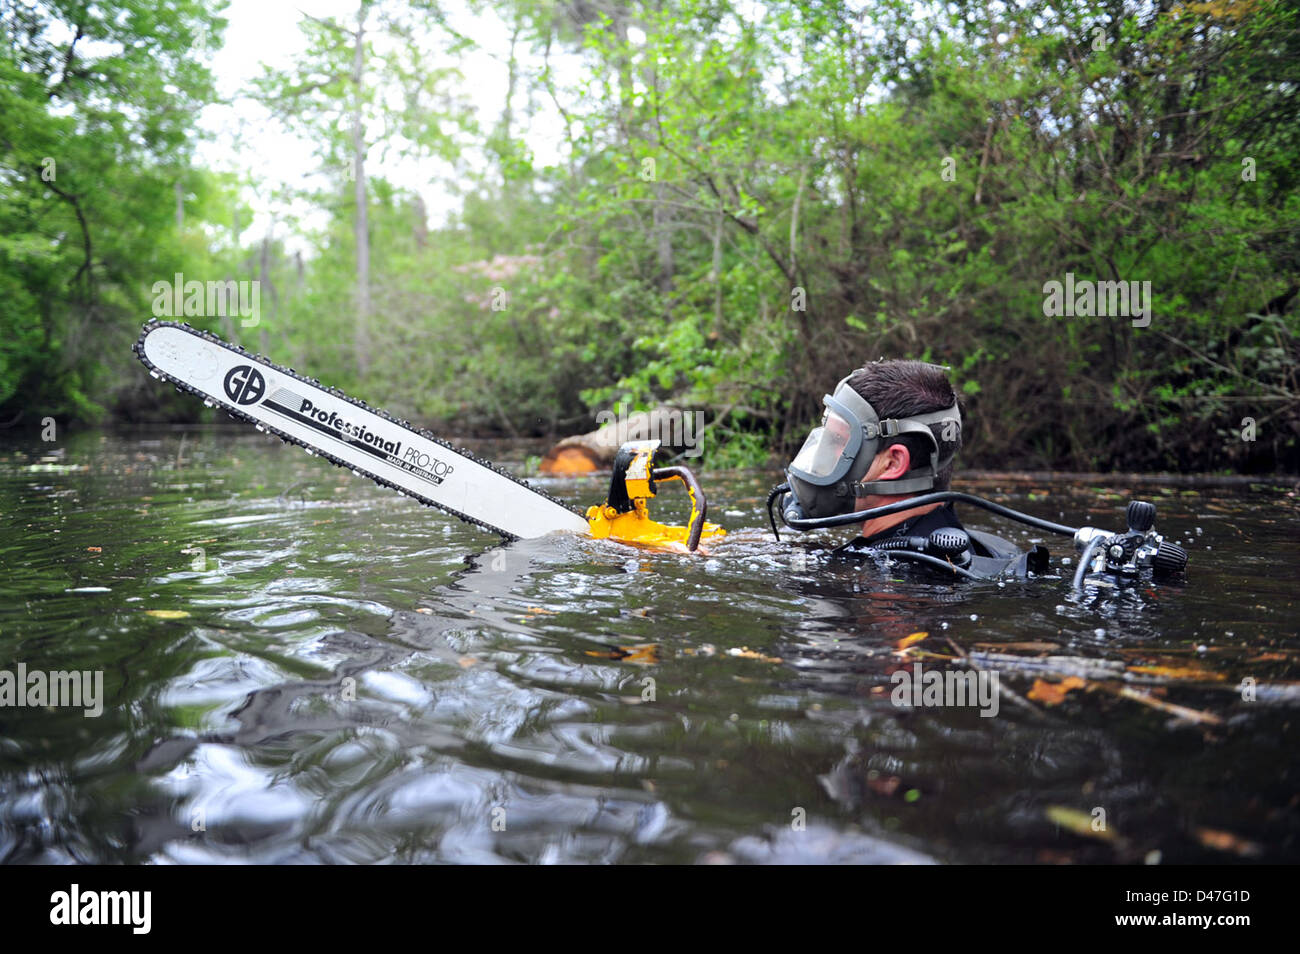 An Underwater Construction Team member hands off their hydraulic saw in preparation to exit the river during a field Stock Photo